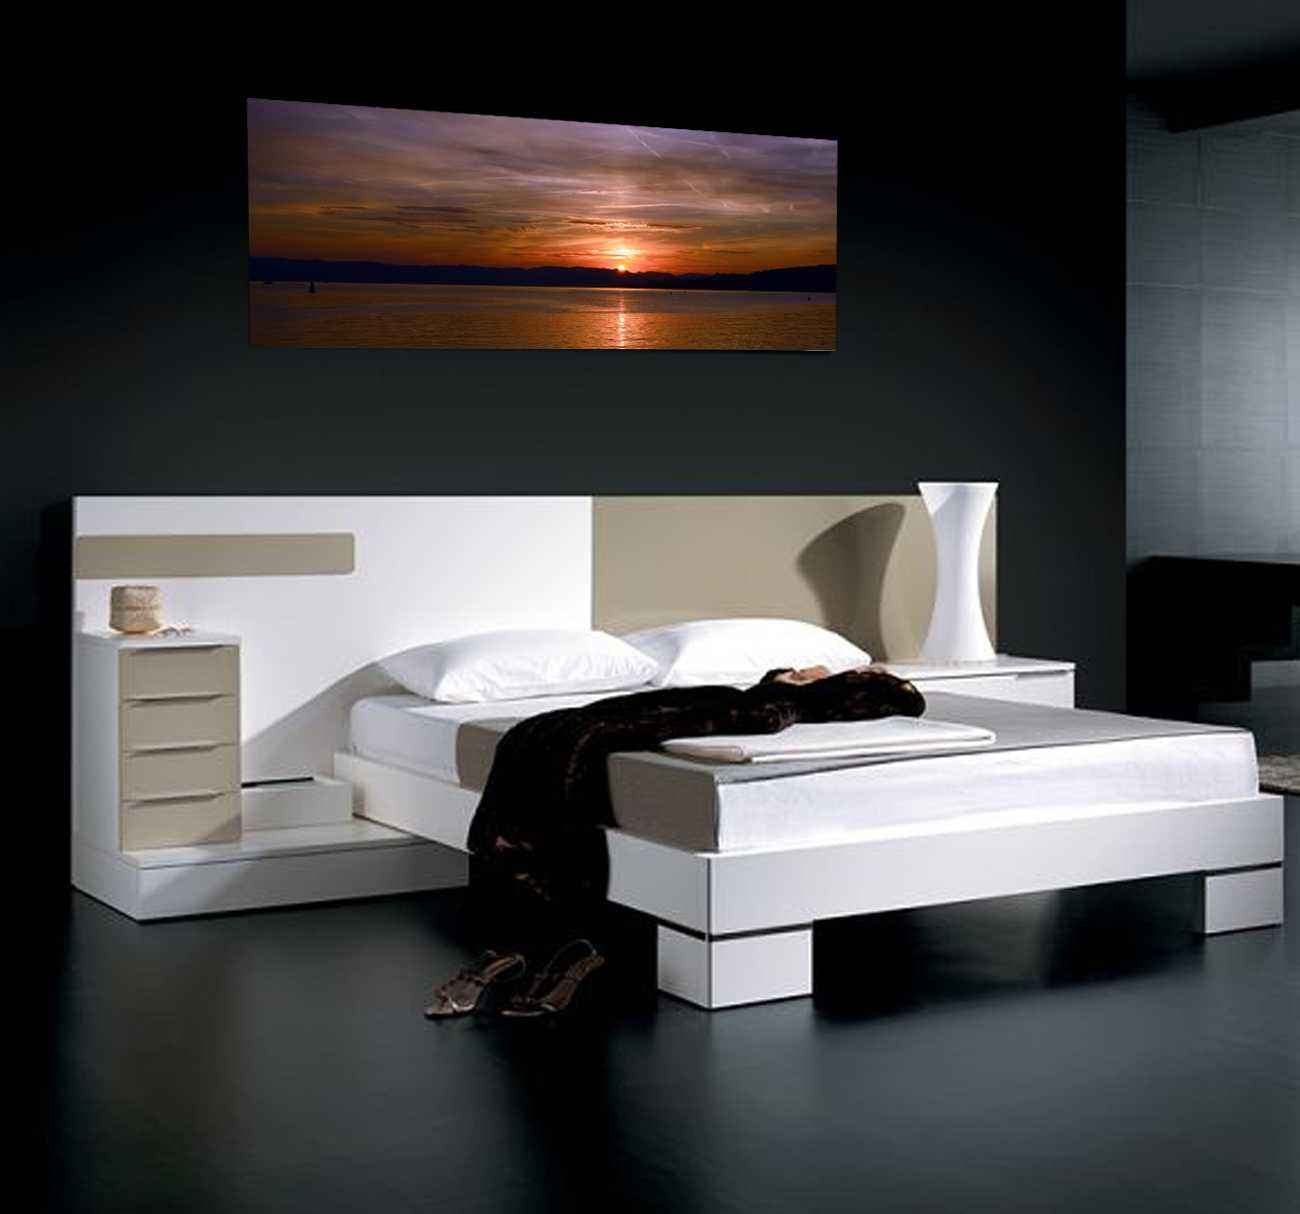 Cuadros Estilo Zen Affordable Amazing Beautiful Chinese  # Muebles Estilo Budista